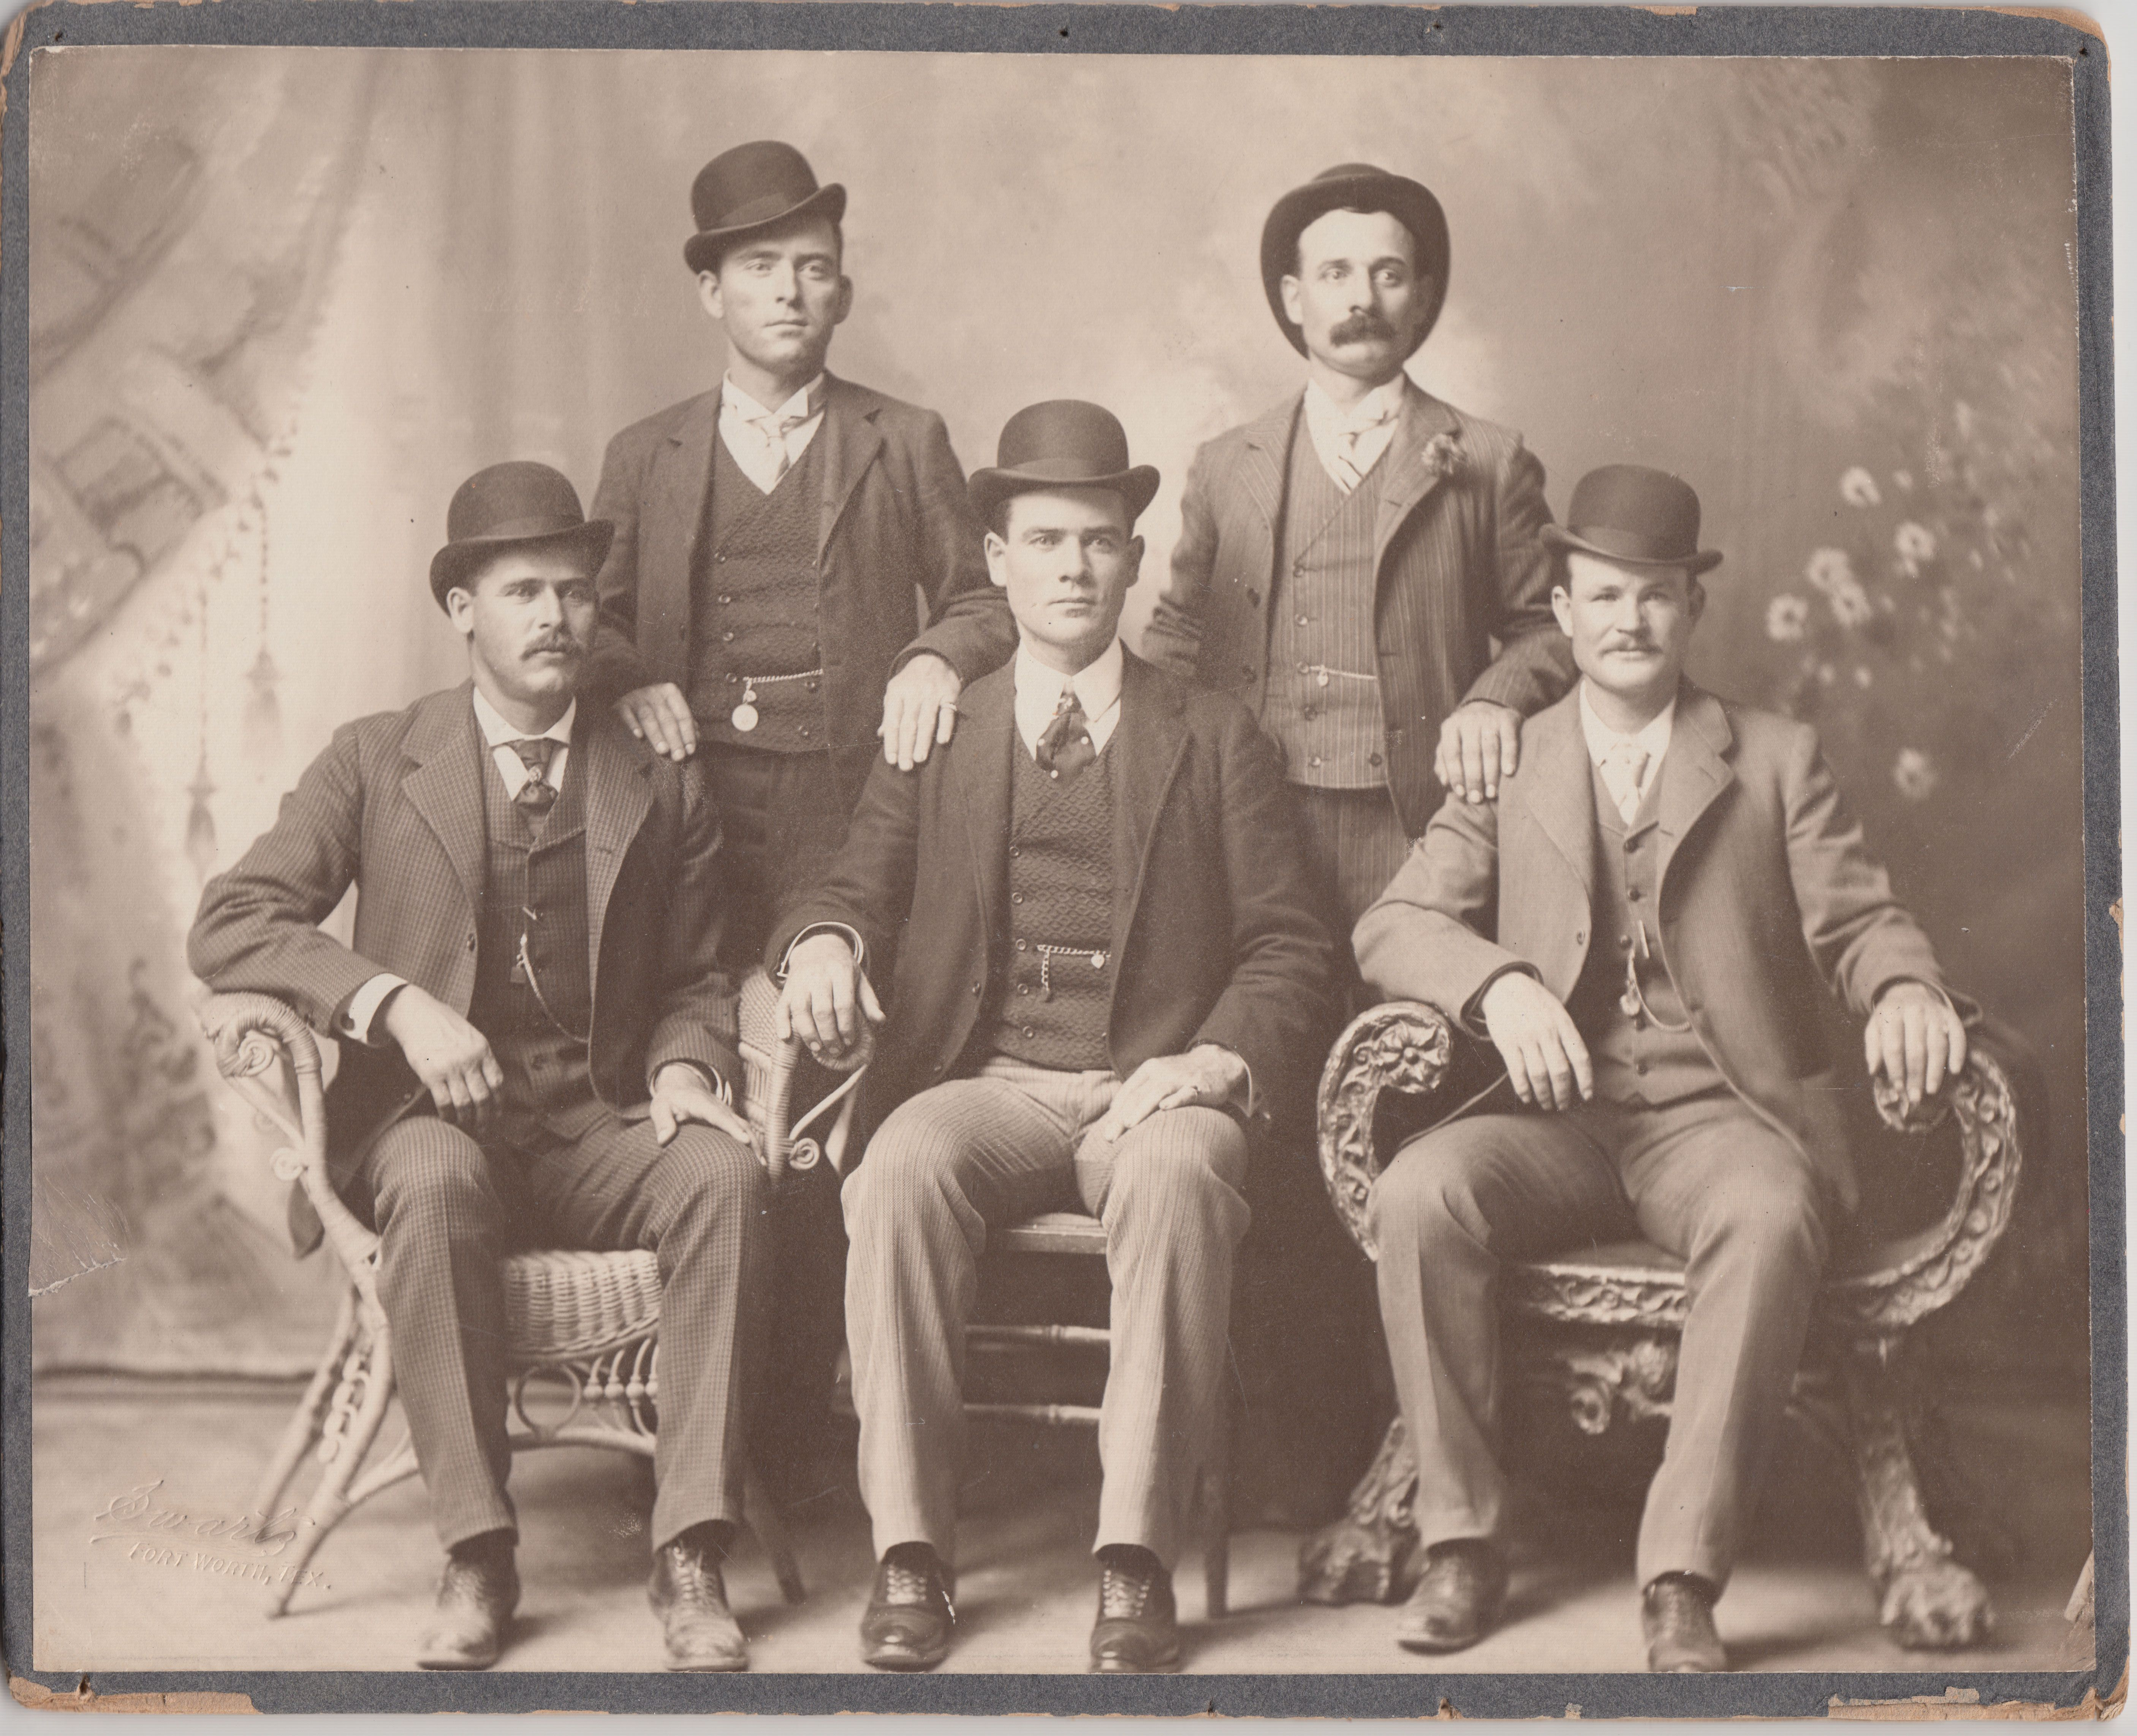 In the 1890s, Butch Cassidy and the Sundance Kid exploits — robbing banks and trains in the West and then seemingly vanishing into thin air — became national news and the basis of rumors and myth. But who were Robert Leroy Parker and Harry Alonzo Longabaugh and how did they come together to form the Wild Bunch gang? AMERICAN EXPERIENCE airs Tuesday, February 11 at 9 pm on WSKG-HD.